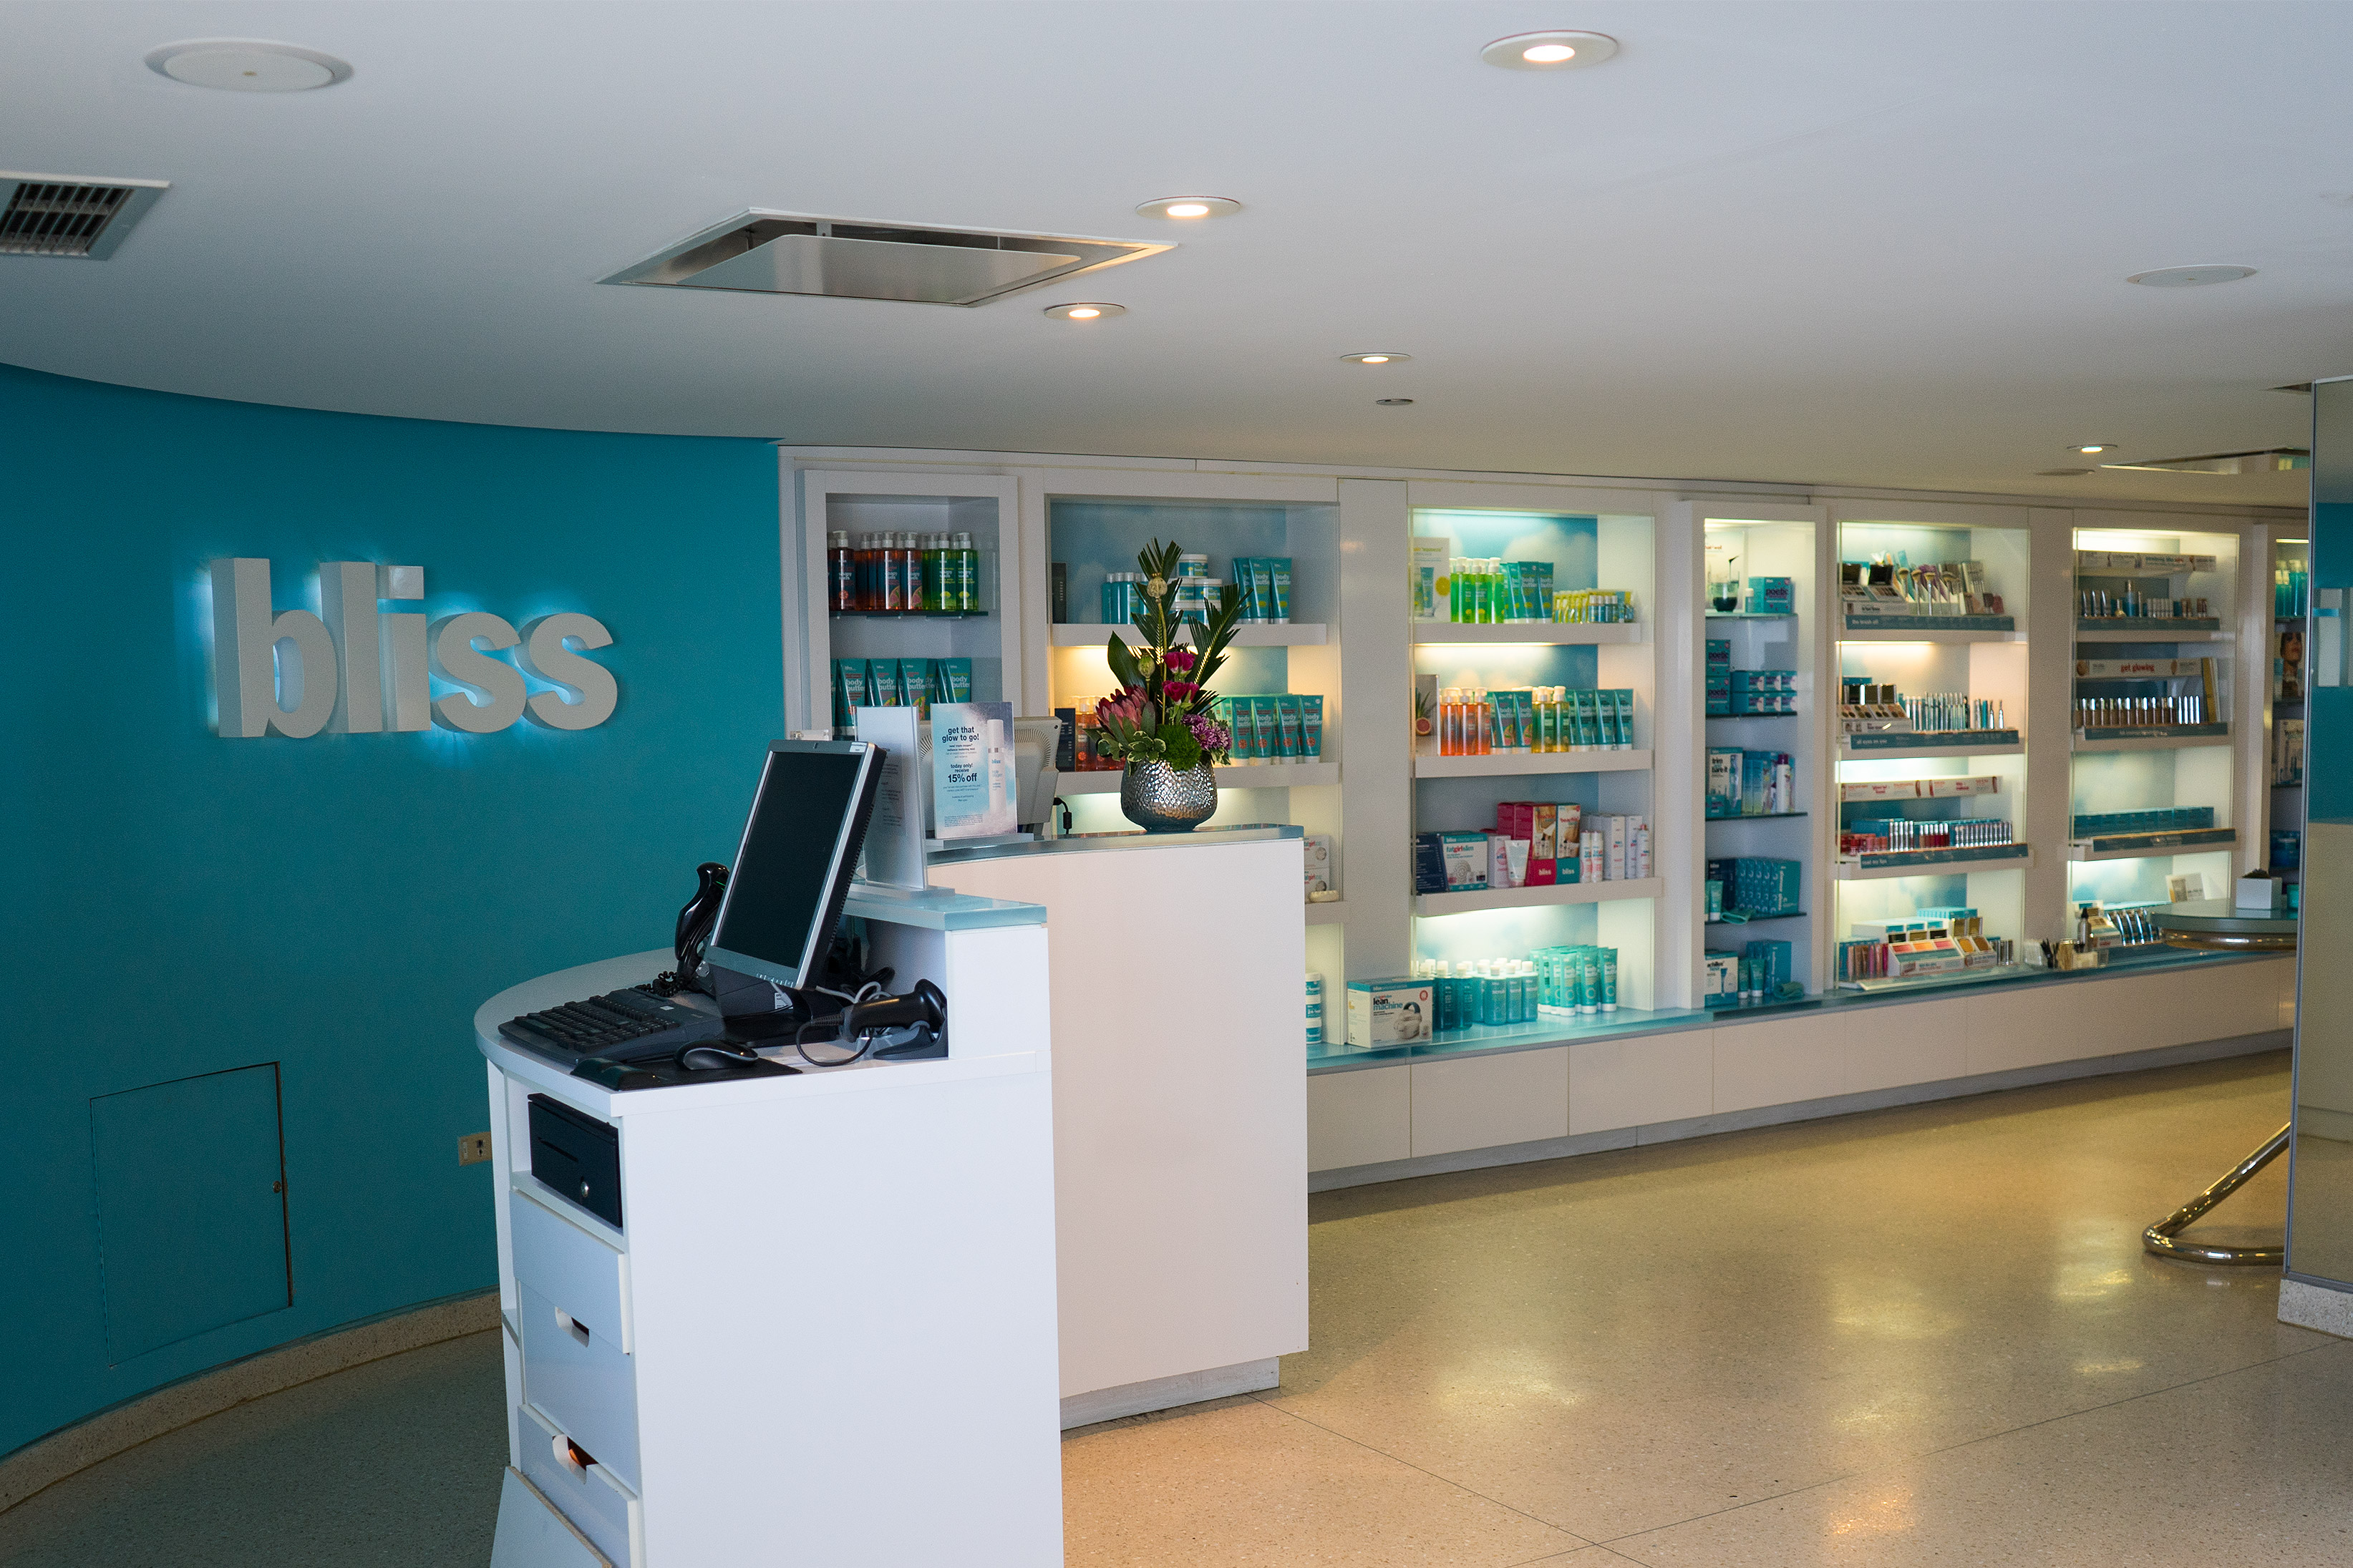 Chicago W Lakeshore Bliss Spa